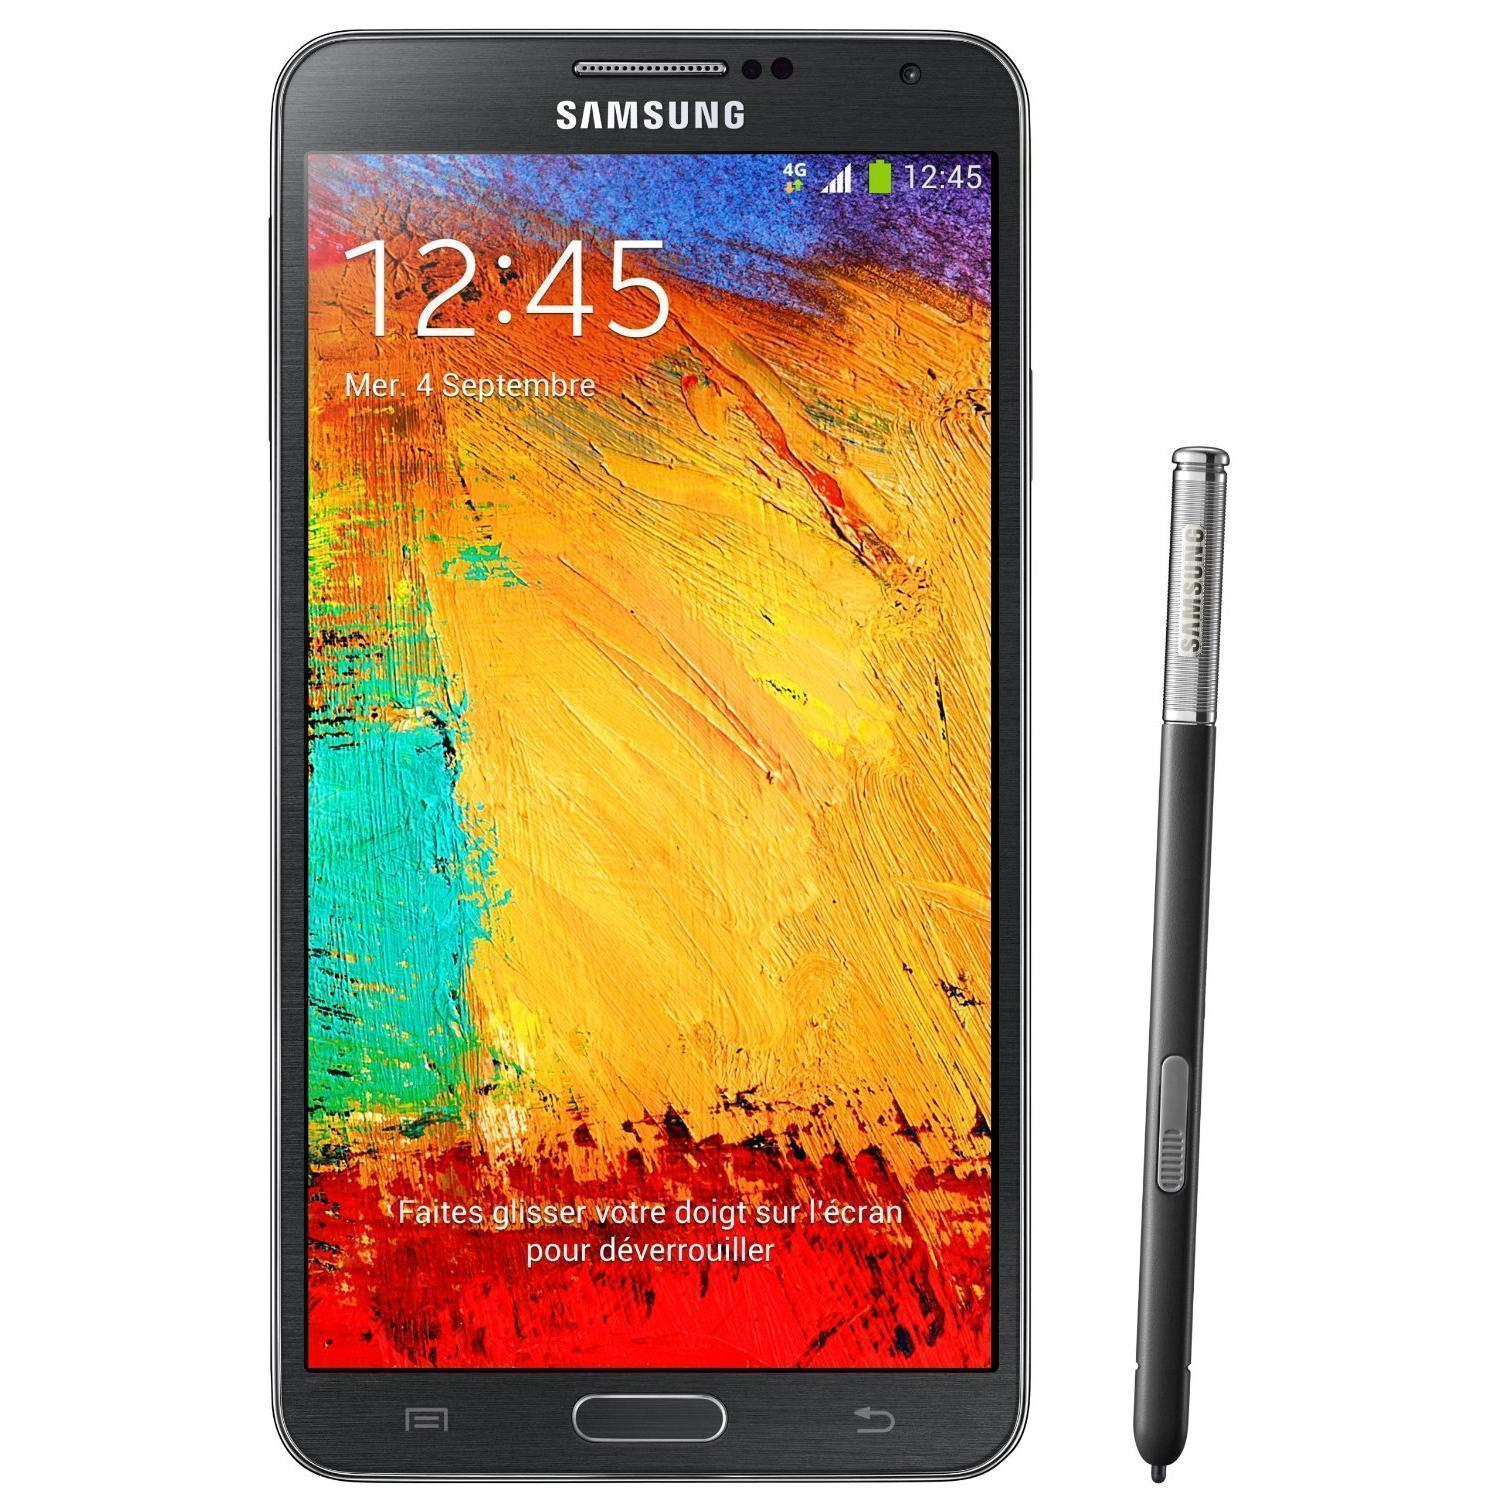 Samsung Galaxy Note 3 N9005 32 Go - Noir - Orange